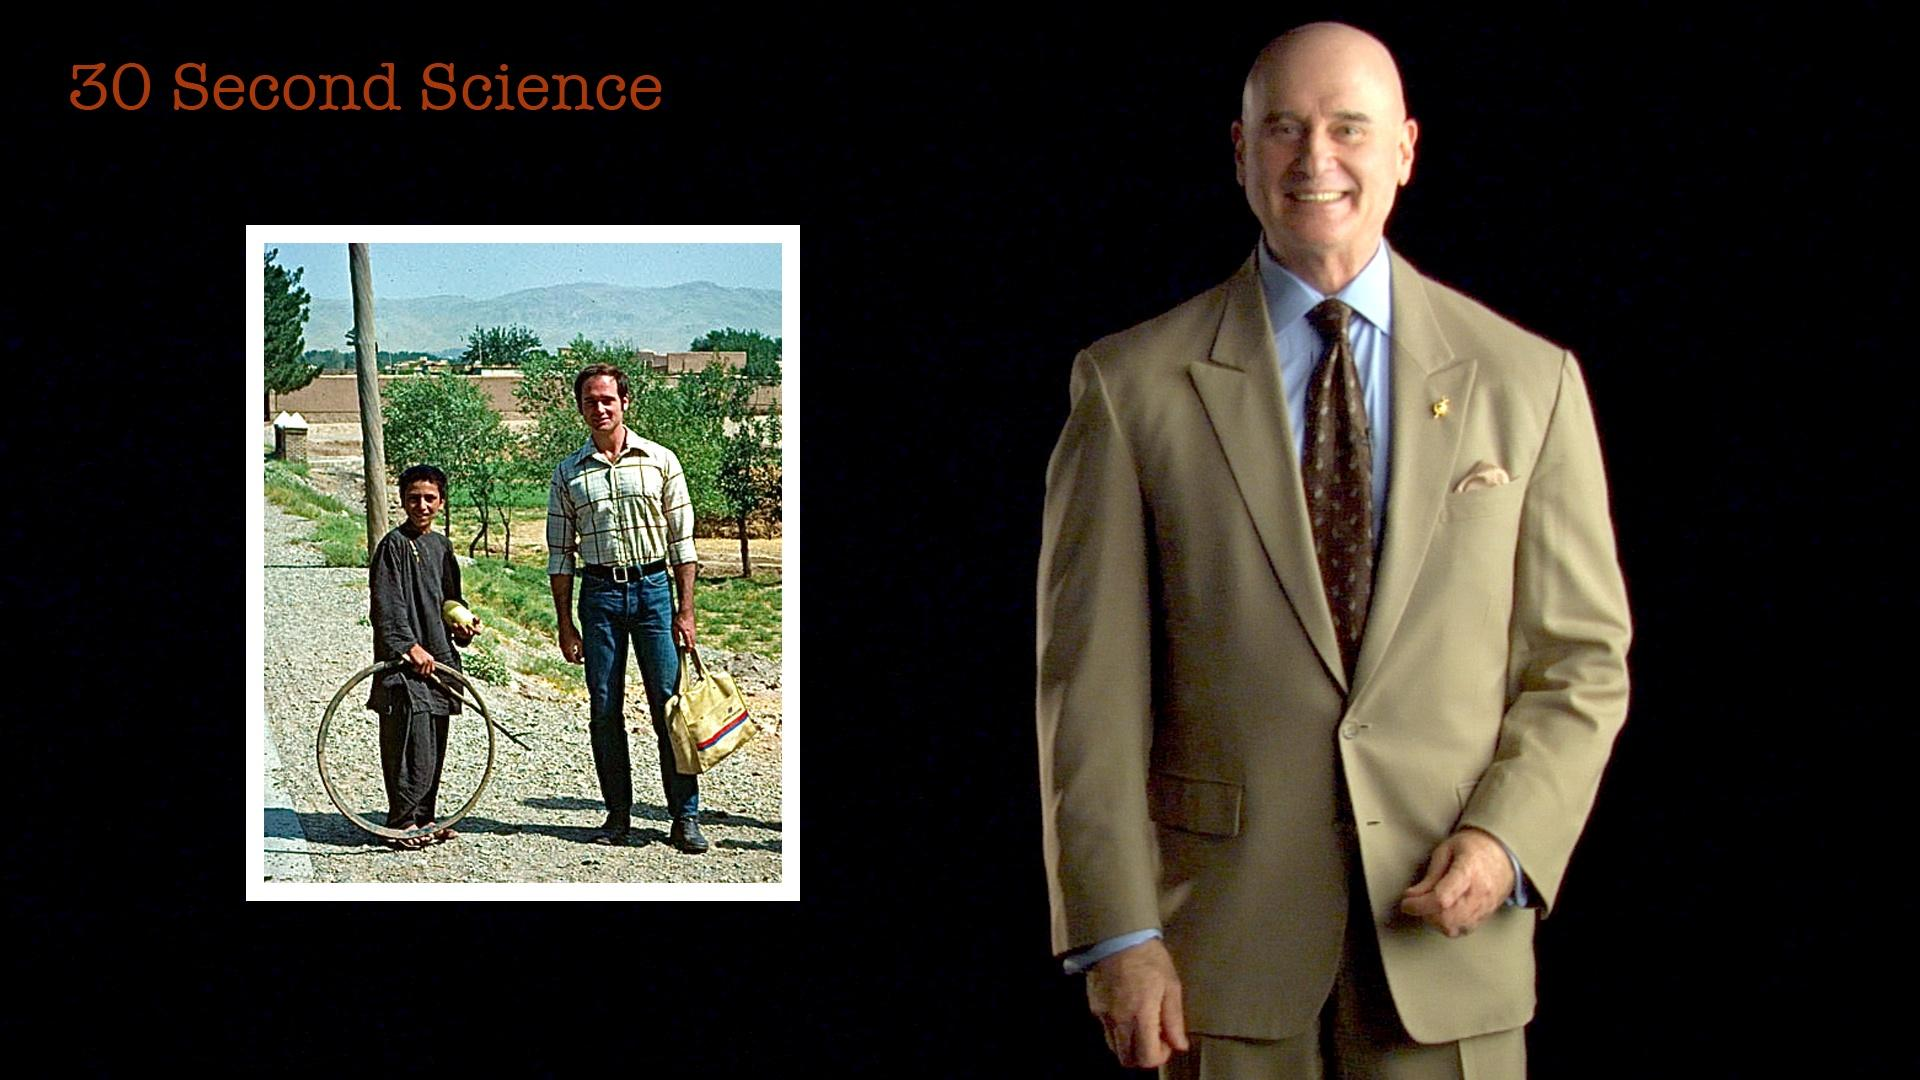 30 Second Science: Paul Frommer image